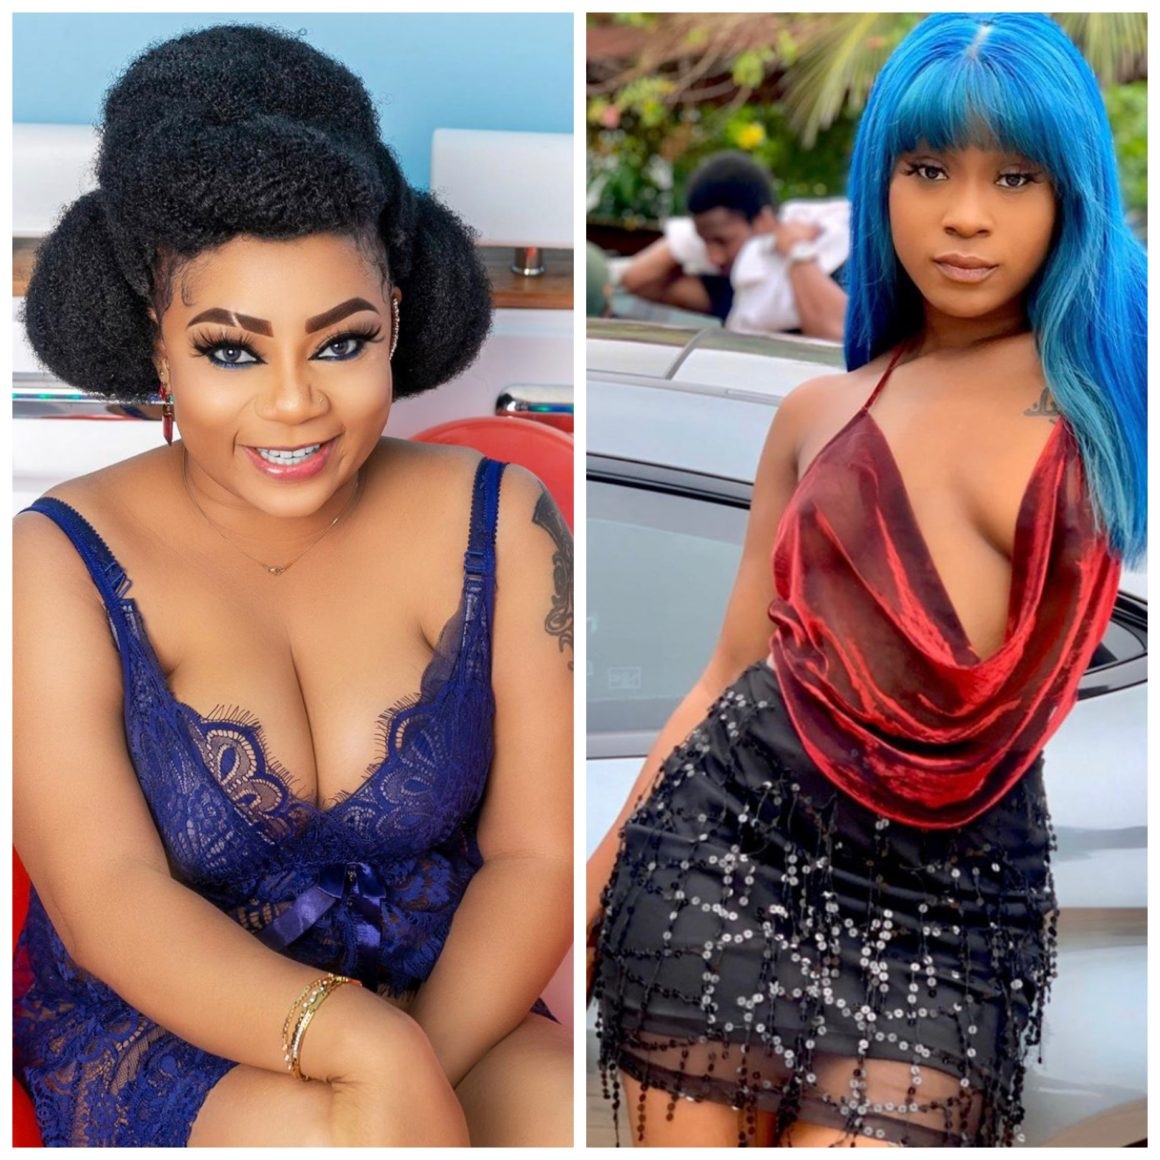 'it's-called-prostitution'-efia-odo-replies-vicky-zugah-on-her-'dating-married-men'-comments